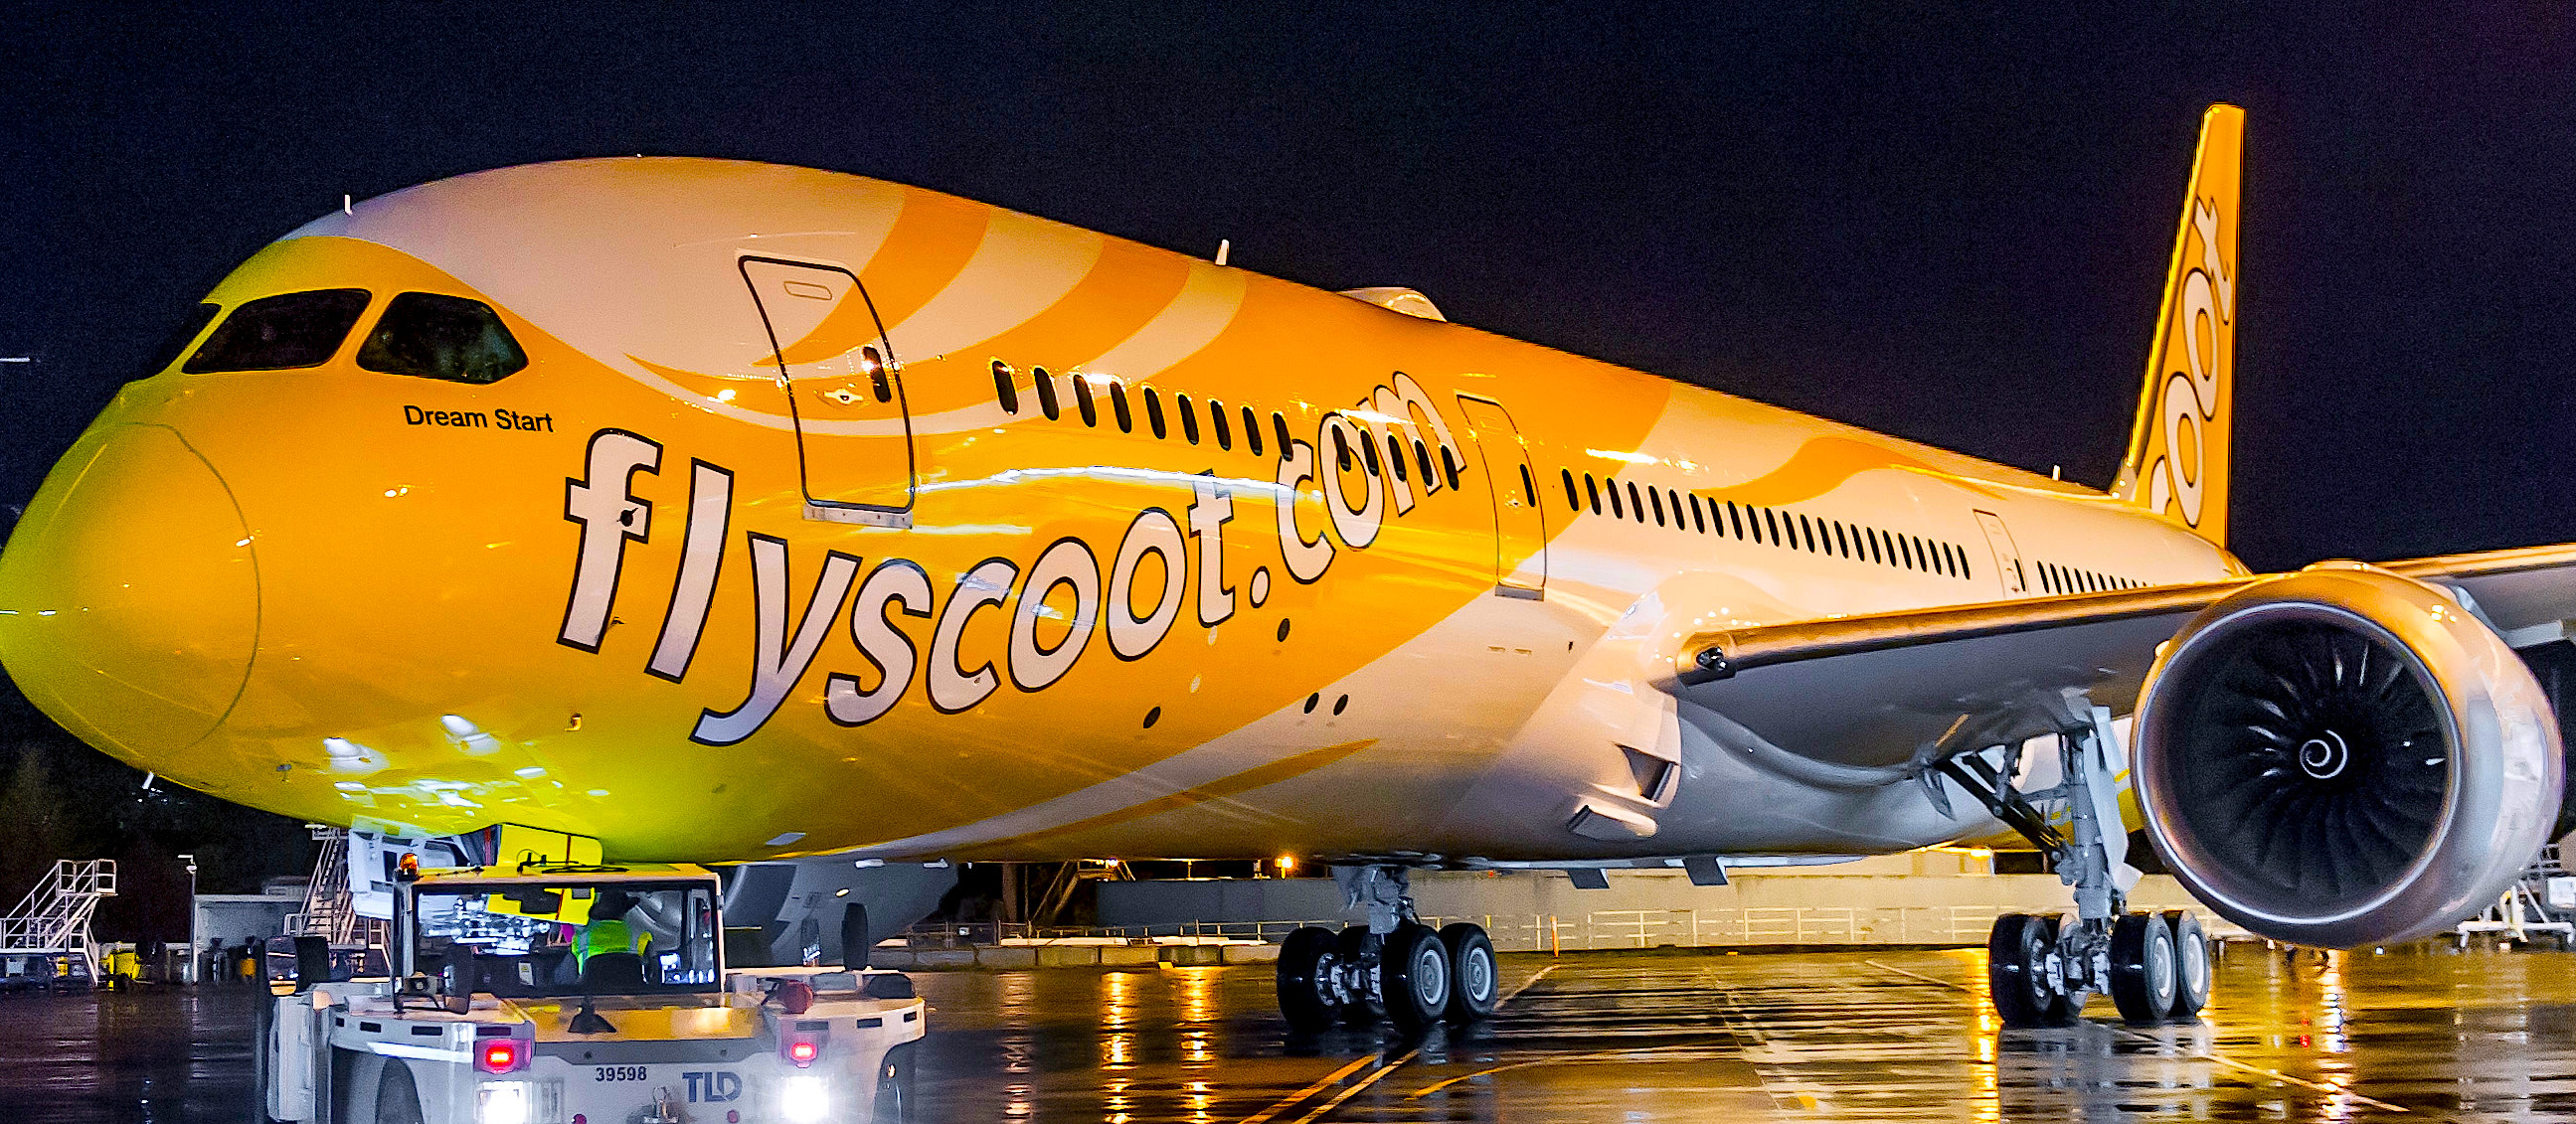 Singapore Perth Route Set For Daily Scoot Flights